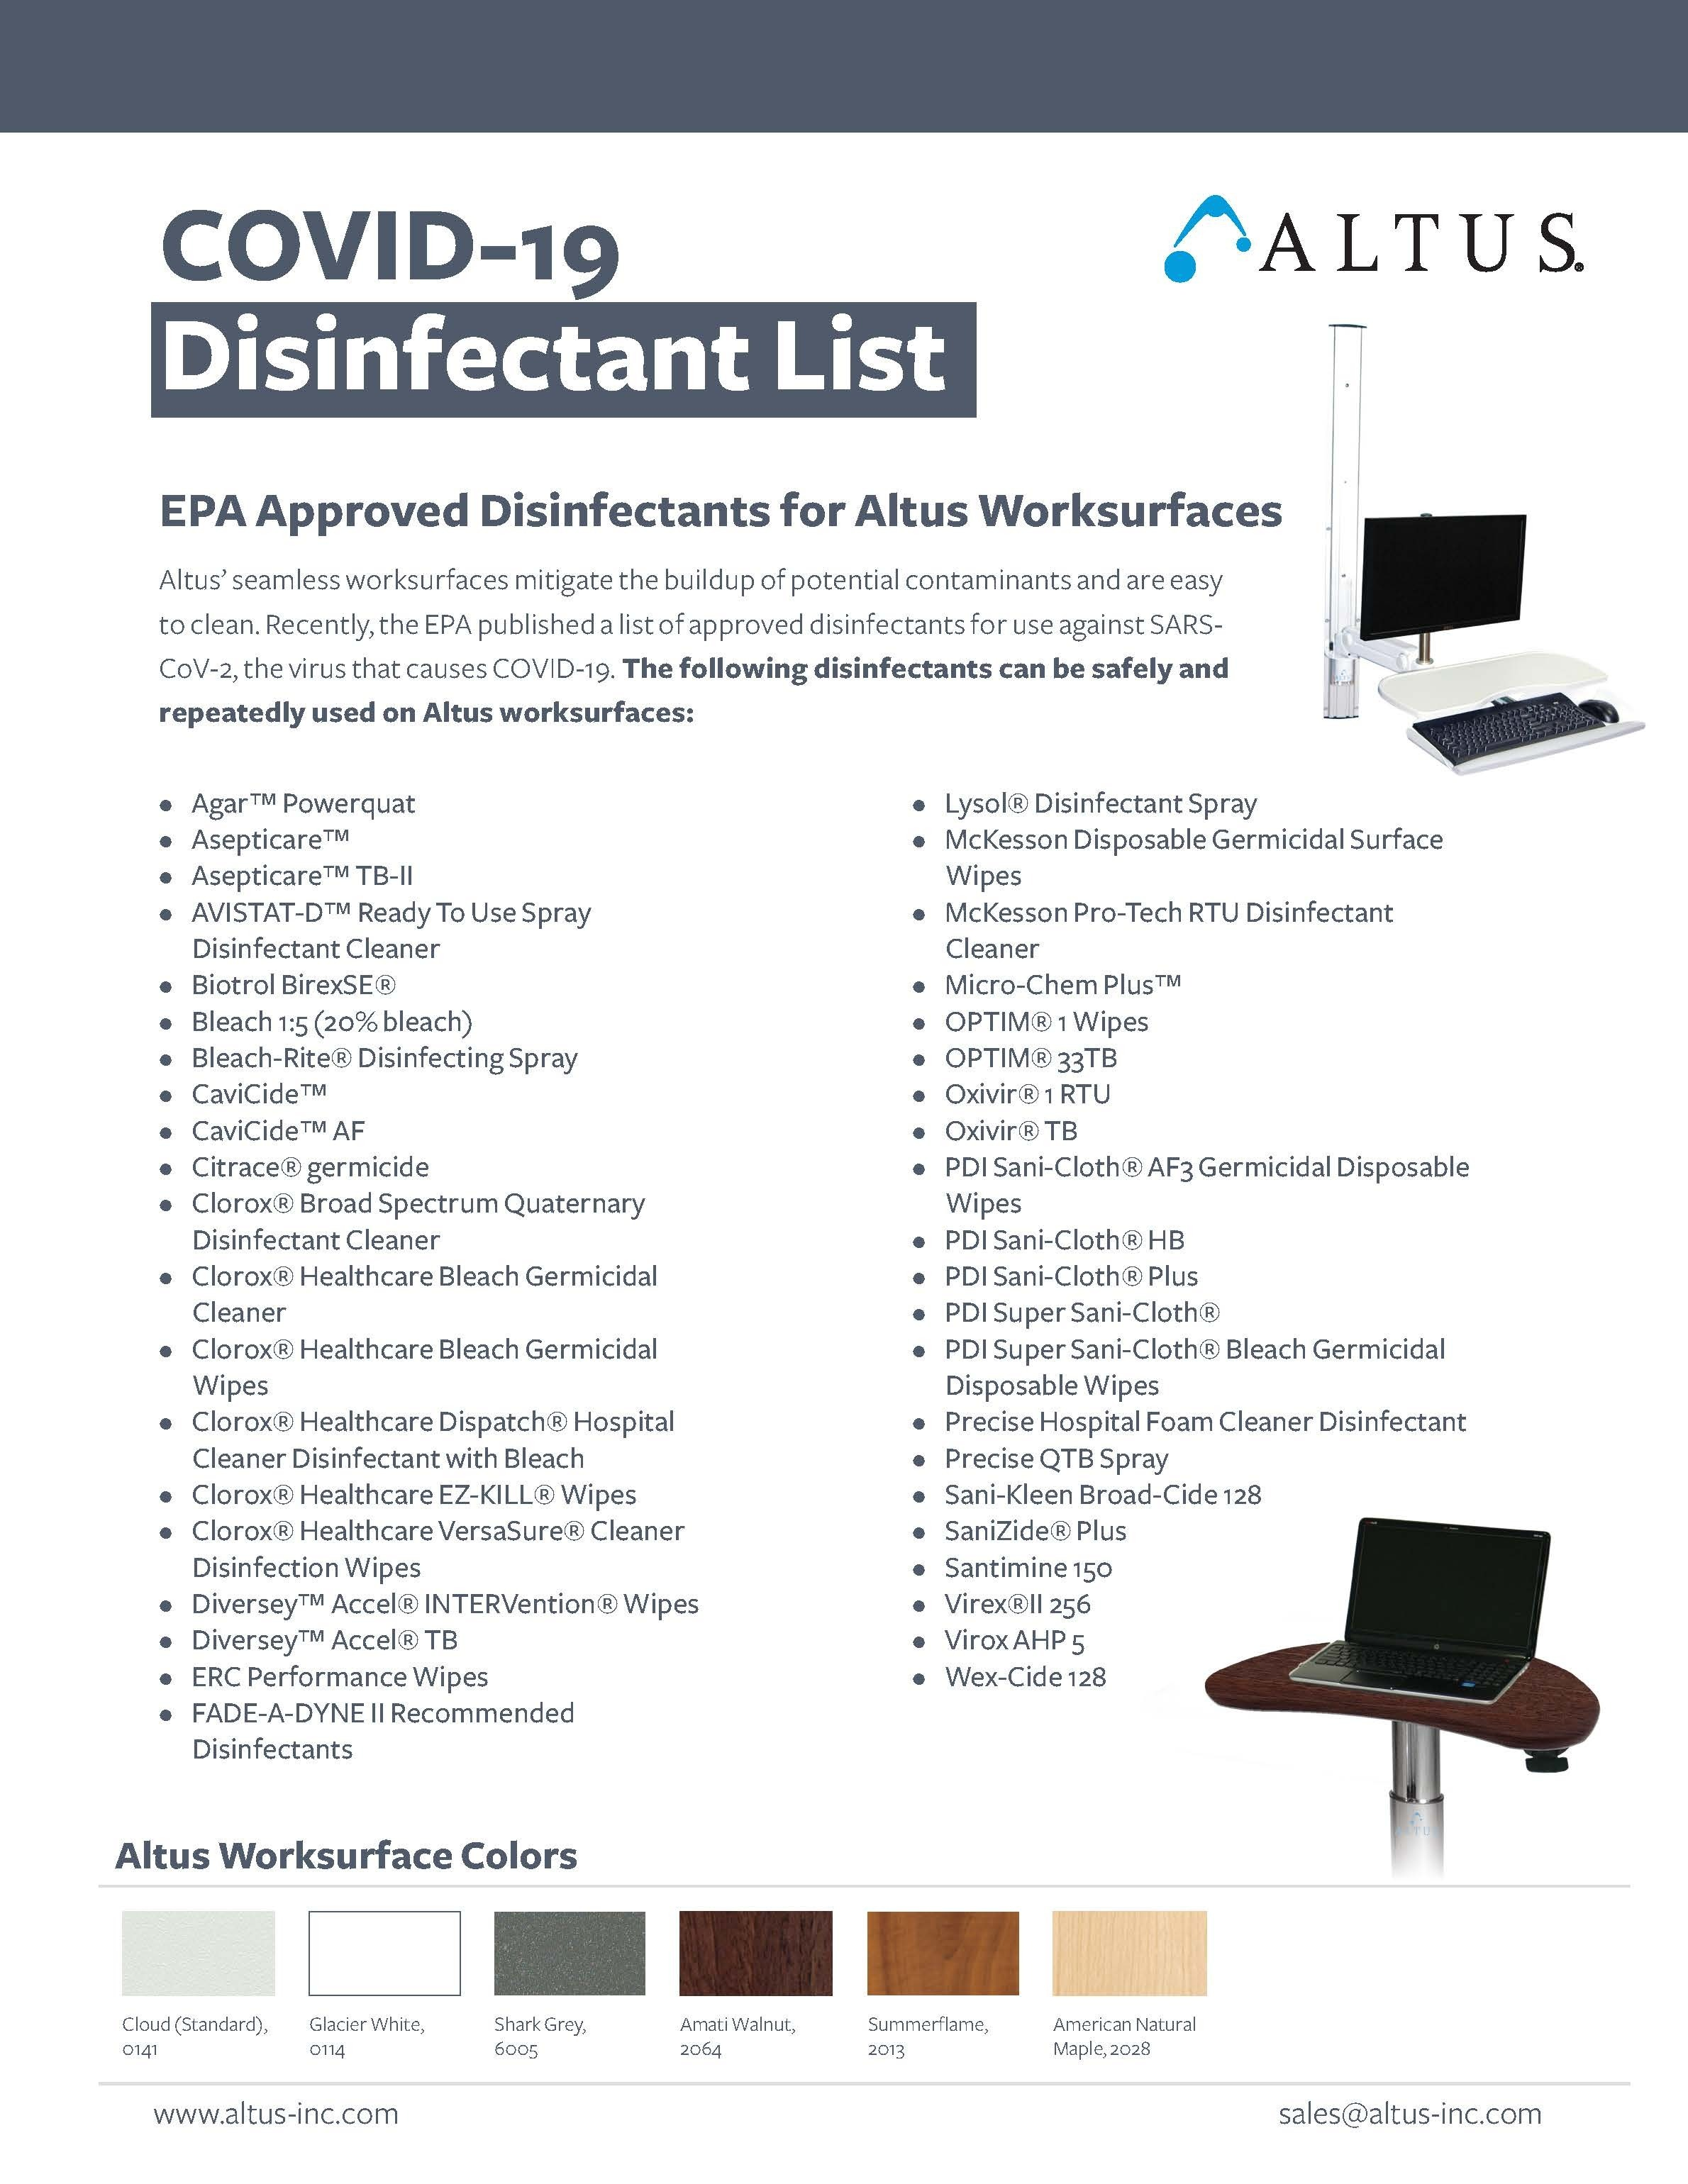 Covid 19 disinfectant list cover